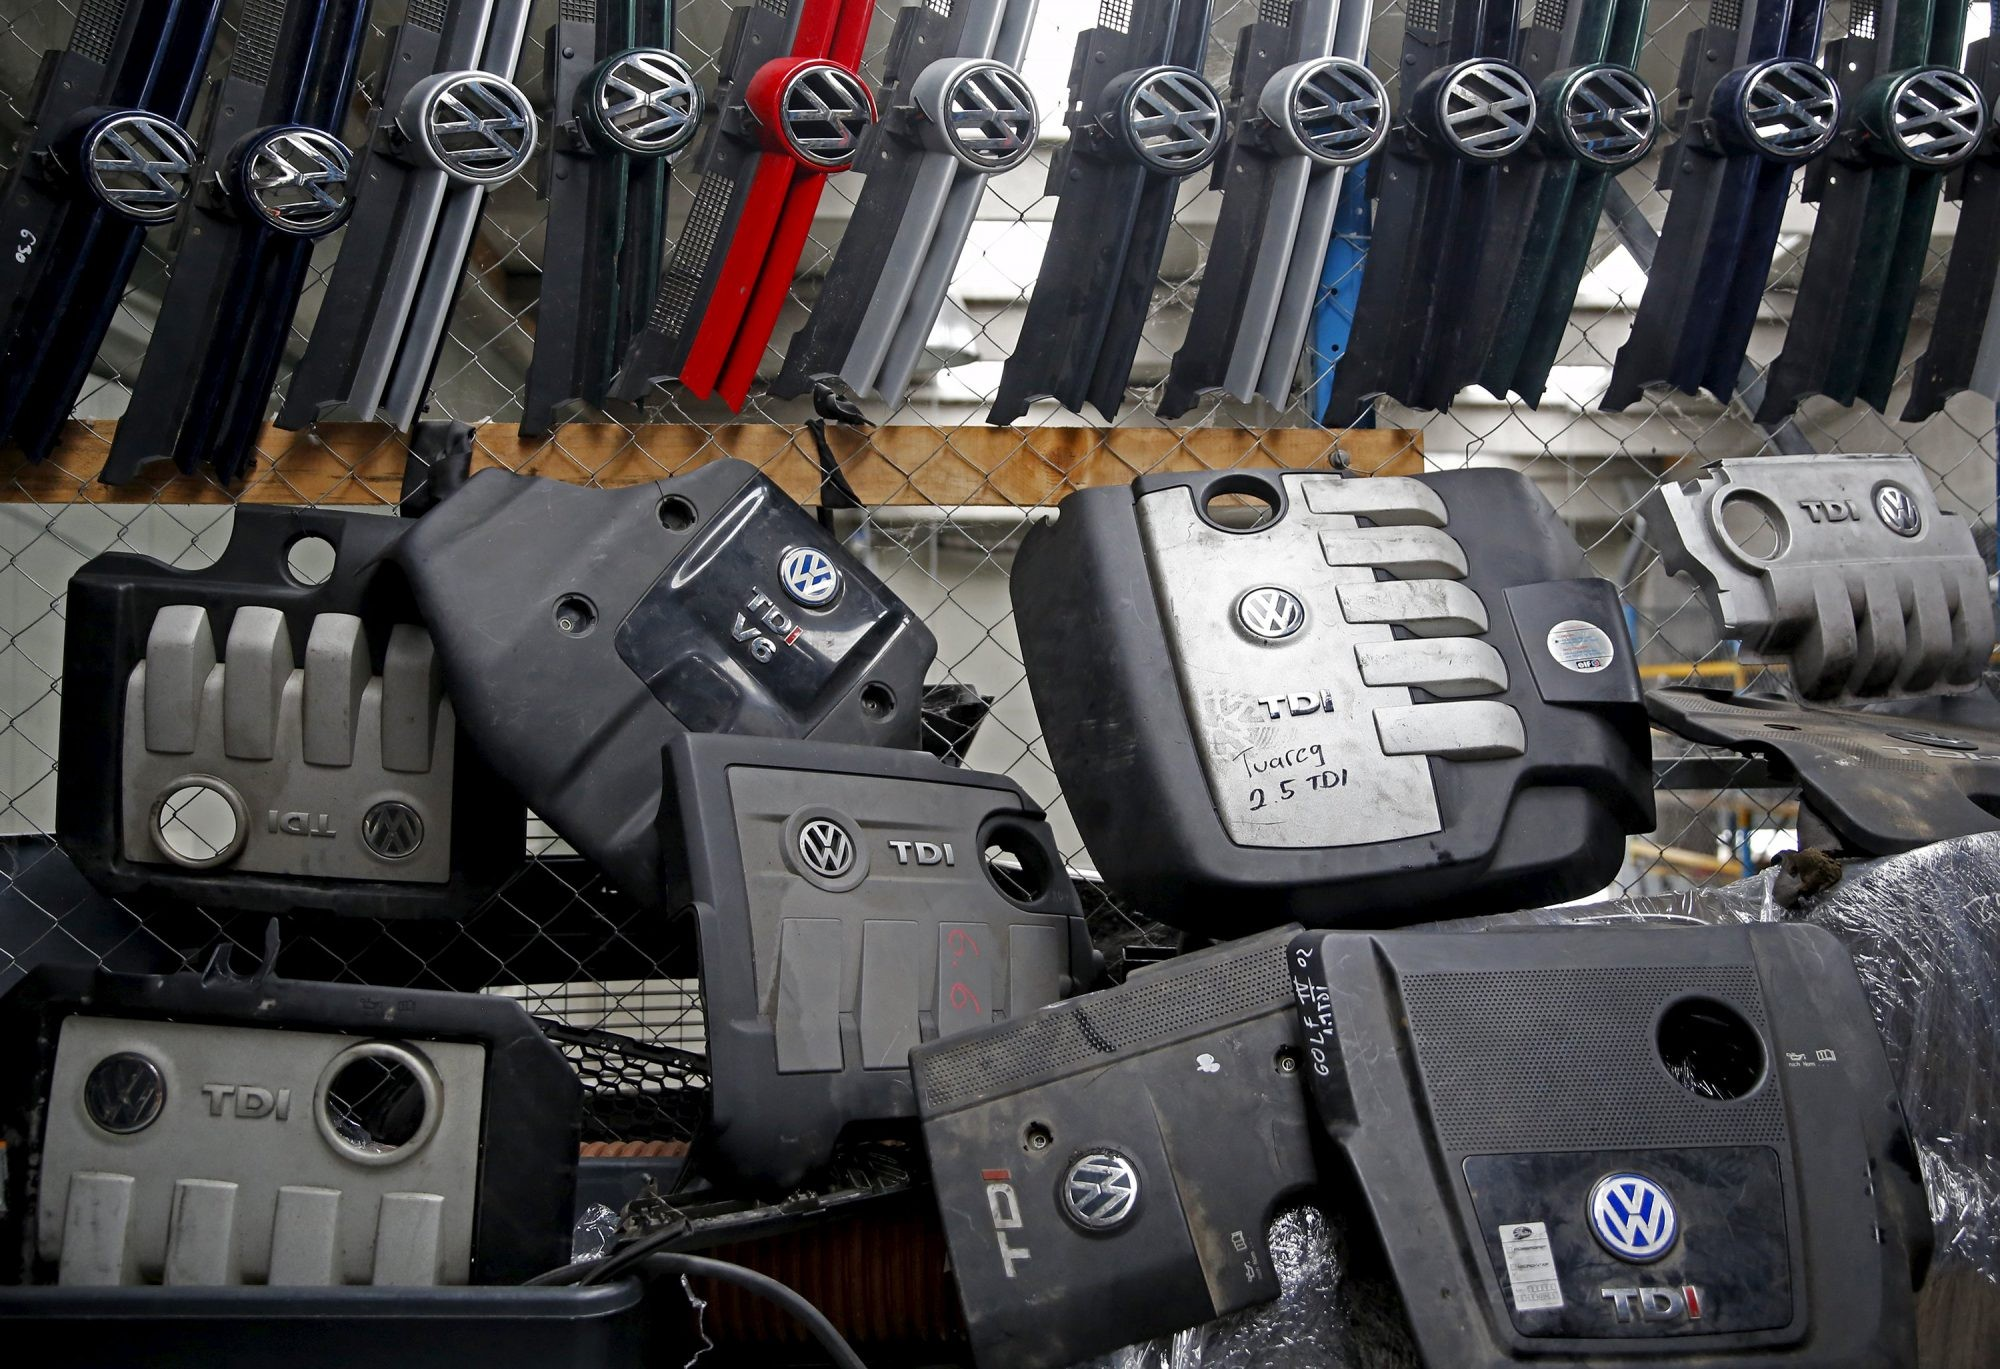 Volkswagen hood masks and covers for diesel TDI engine are seen in this illustration in second-hand car parts in Jelah